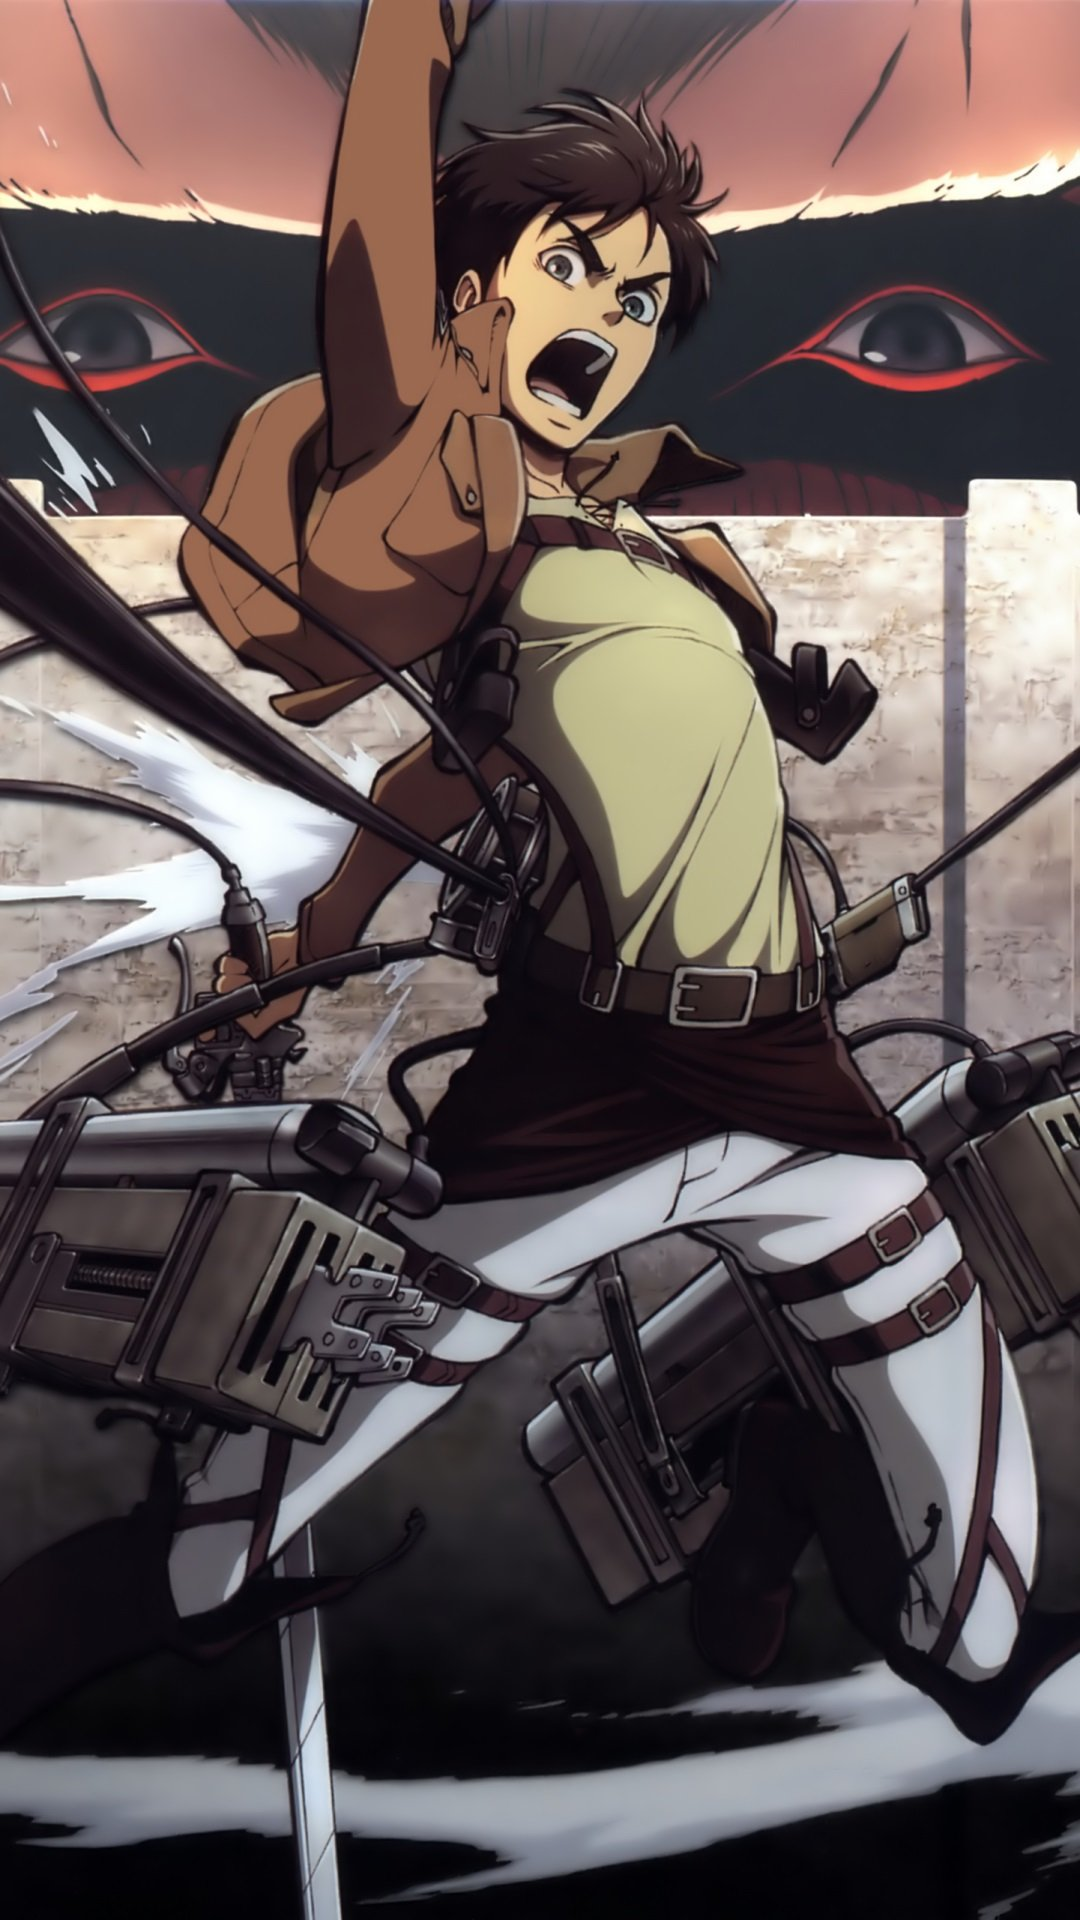 Attack On Titan Wallpaper For Iphone 4s - Attack on titan iphone wallpaper eren shingeki no kyojin eren jaeger